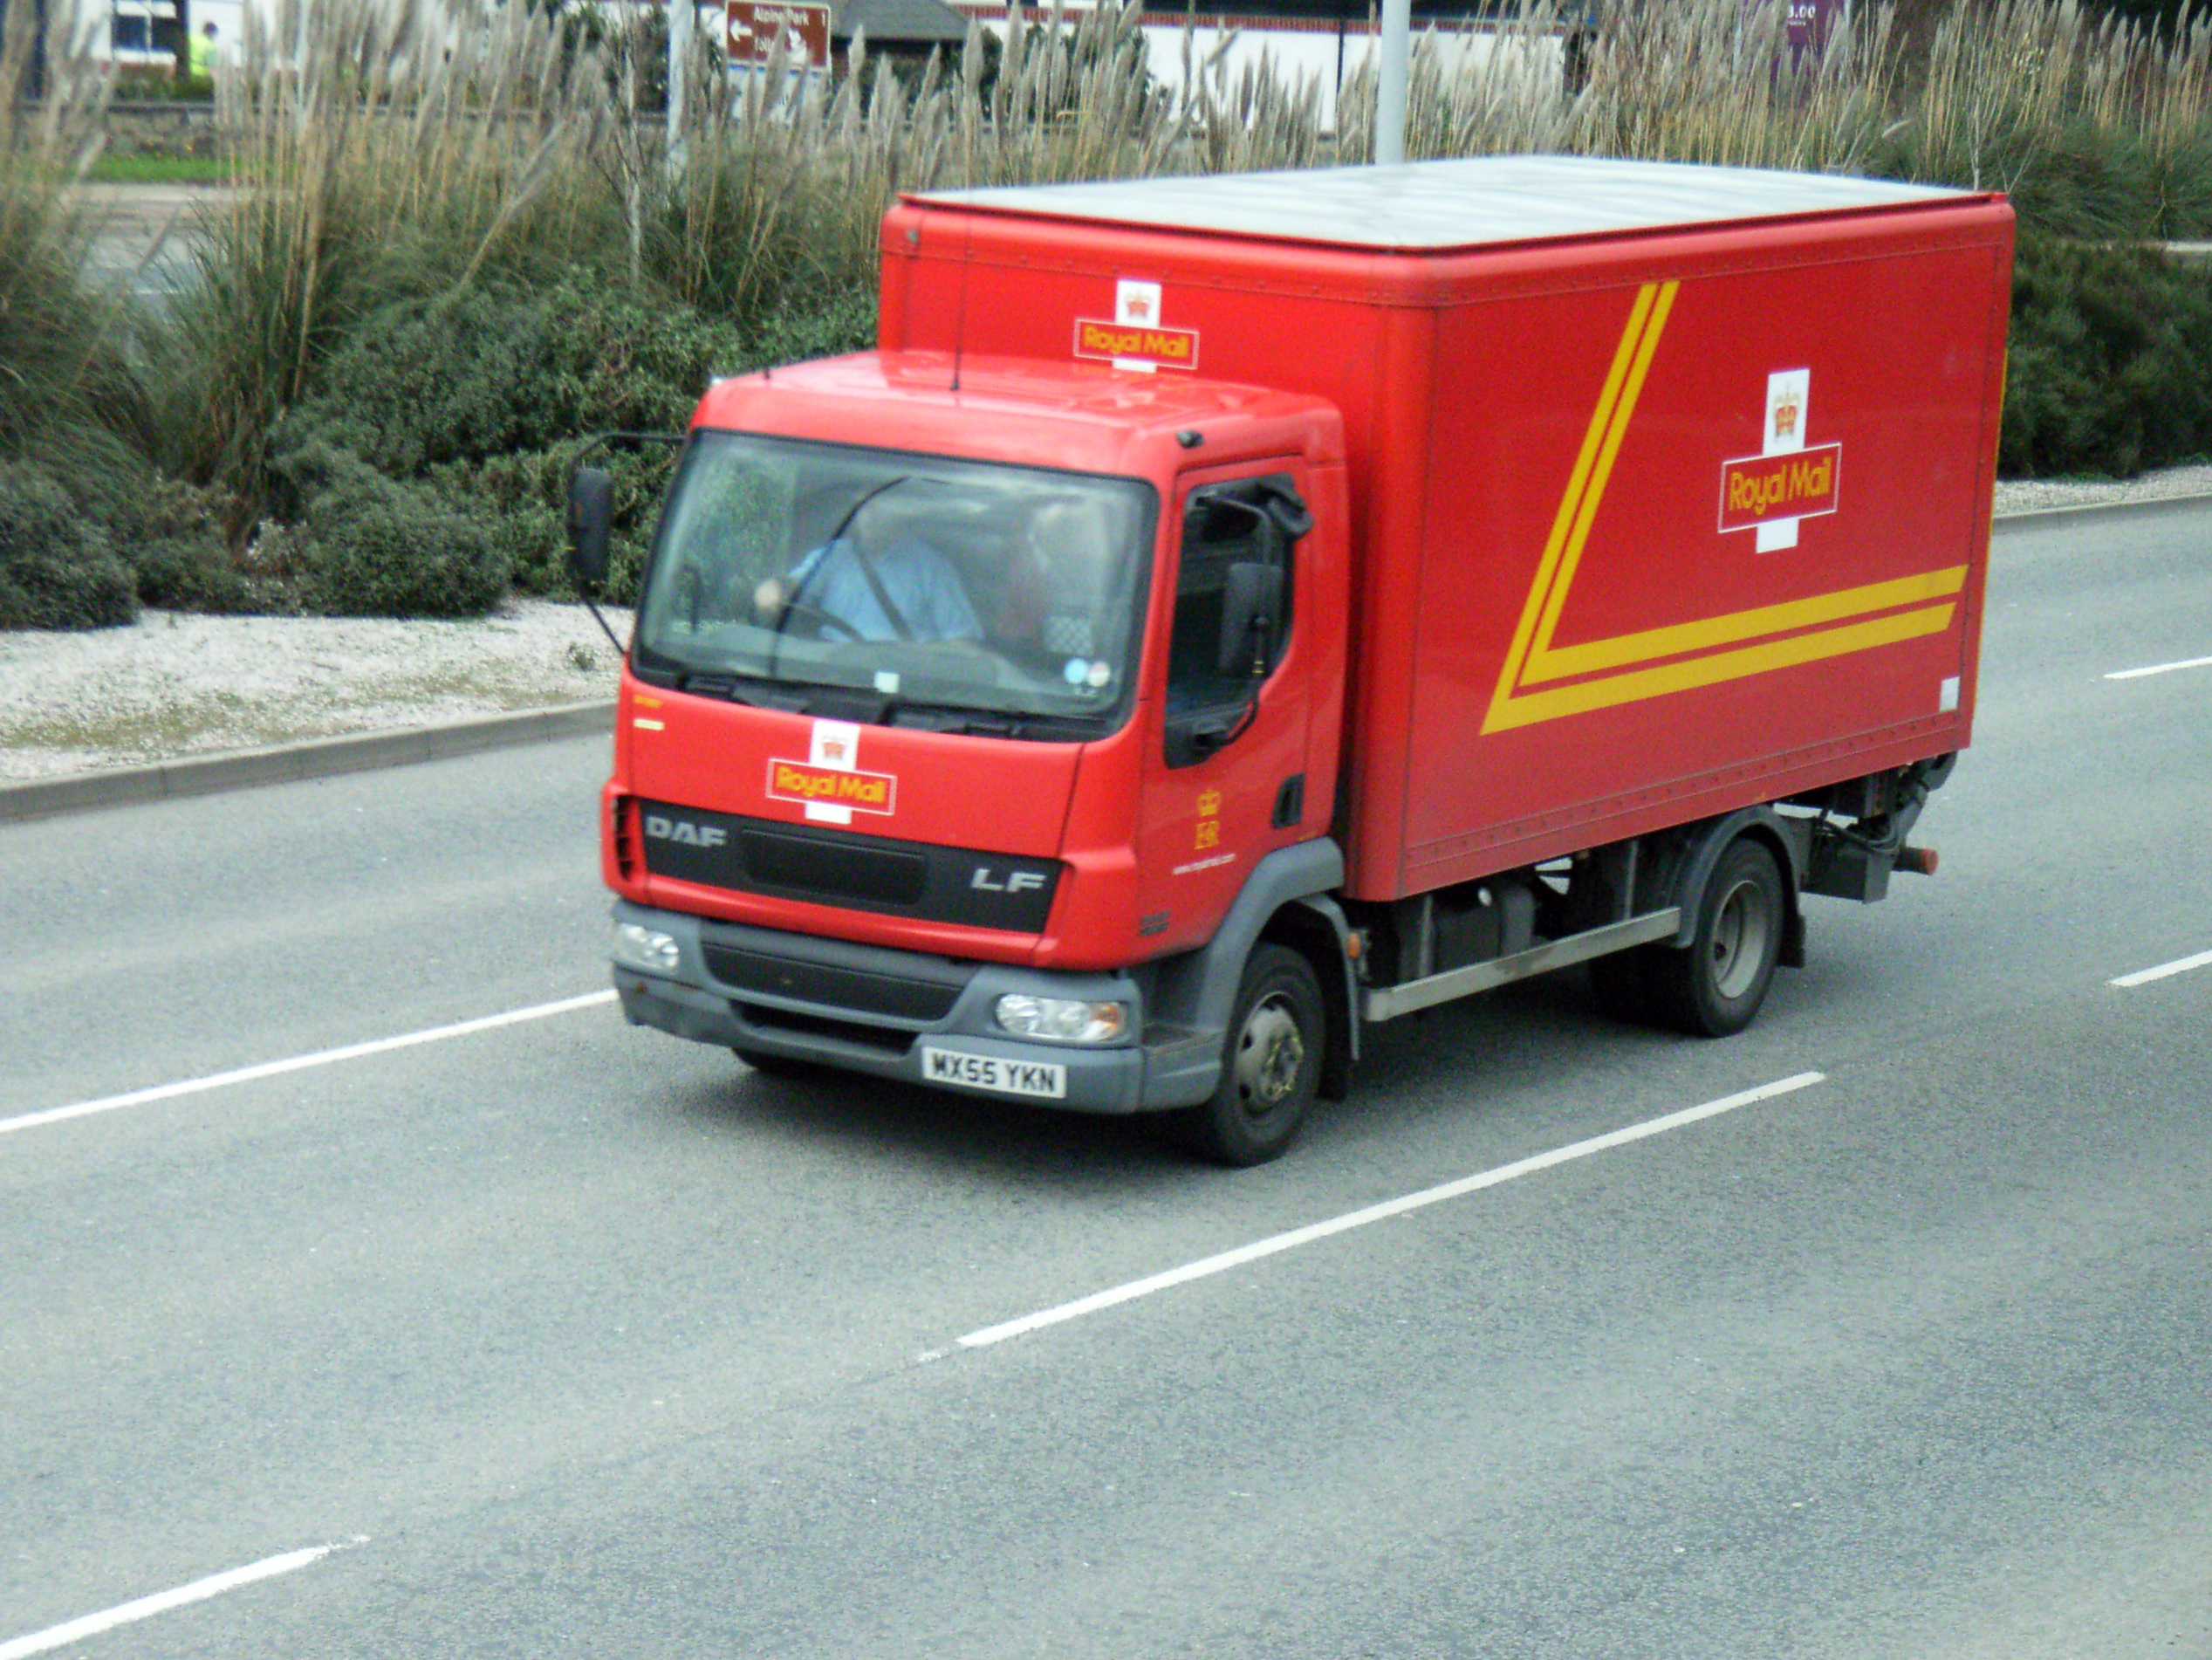 File Royal Mail Mx55ykn 1 Jpg Wikimedia Commons